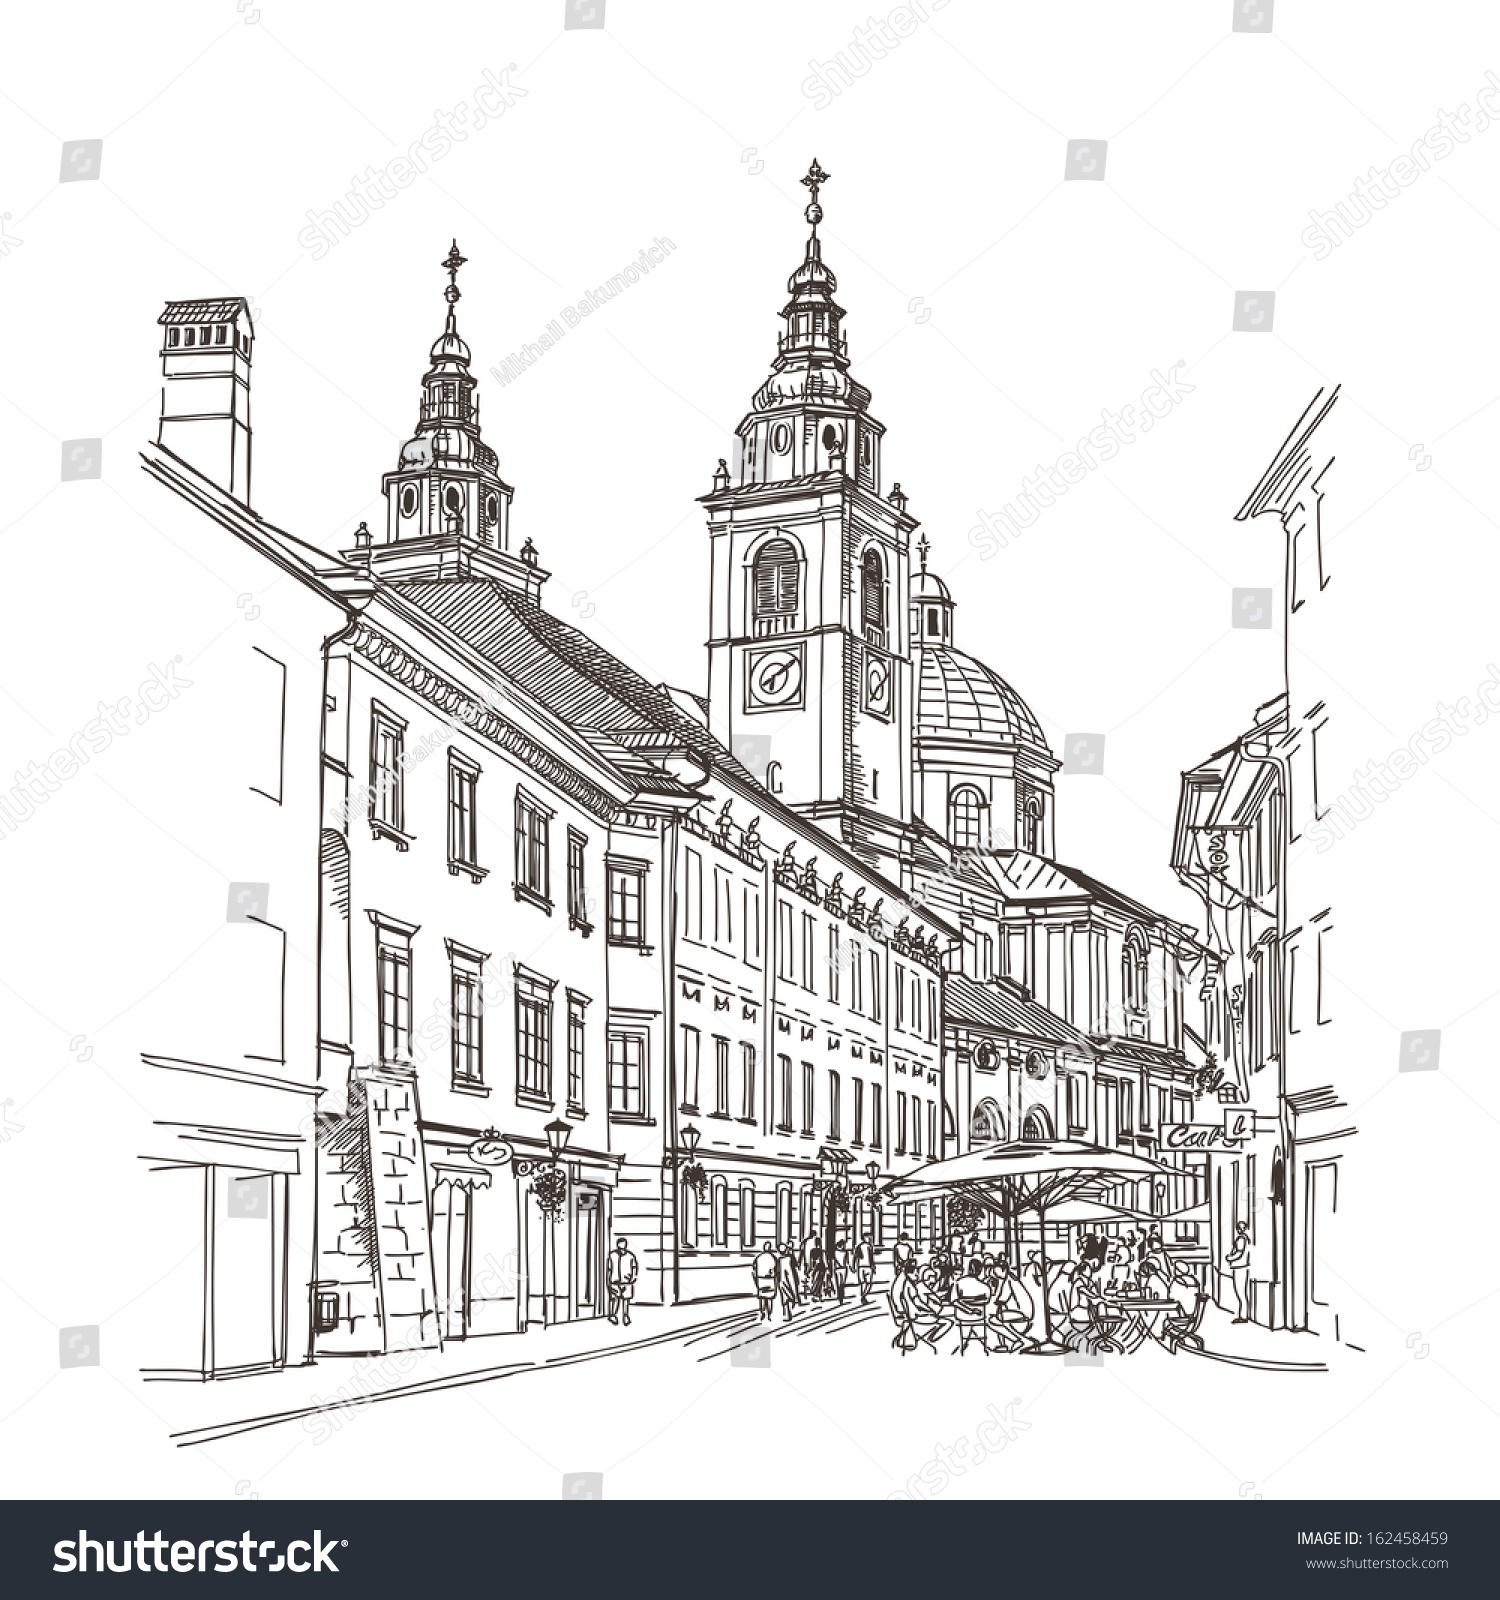 Vector Drawing Of Central Street Old European Town Ljubljana Slovenia